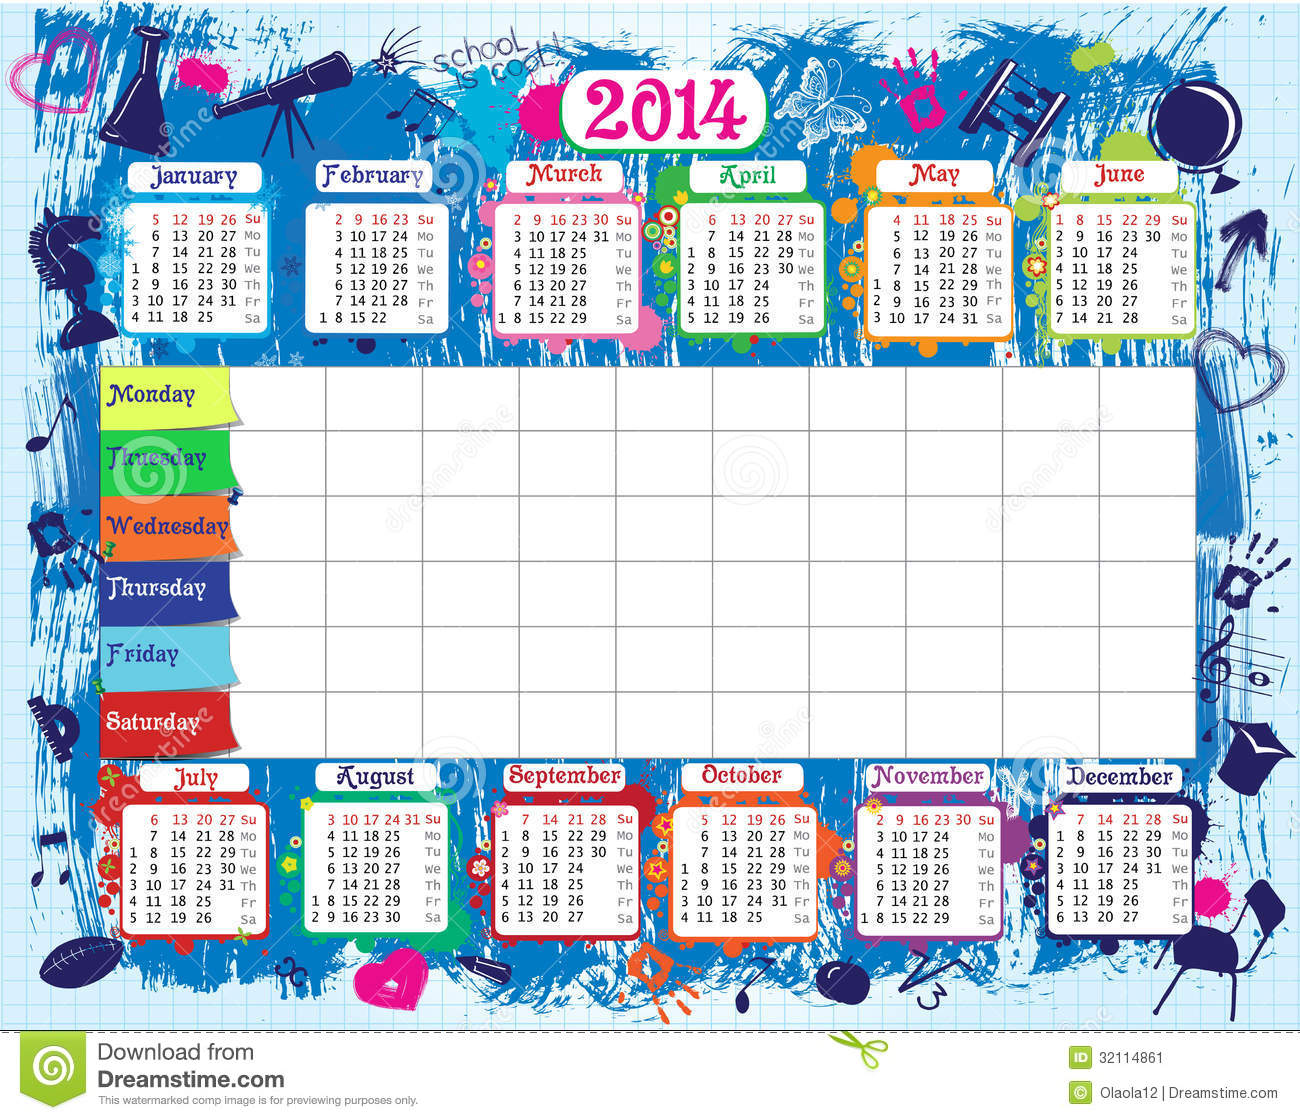 Timetable Of Calendar | Search Results | Calendar 2015